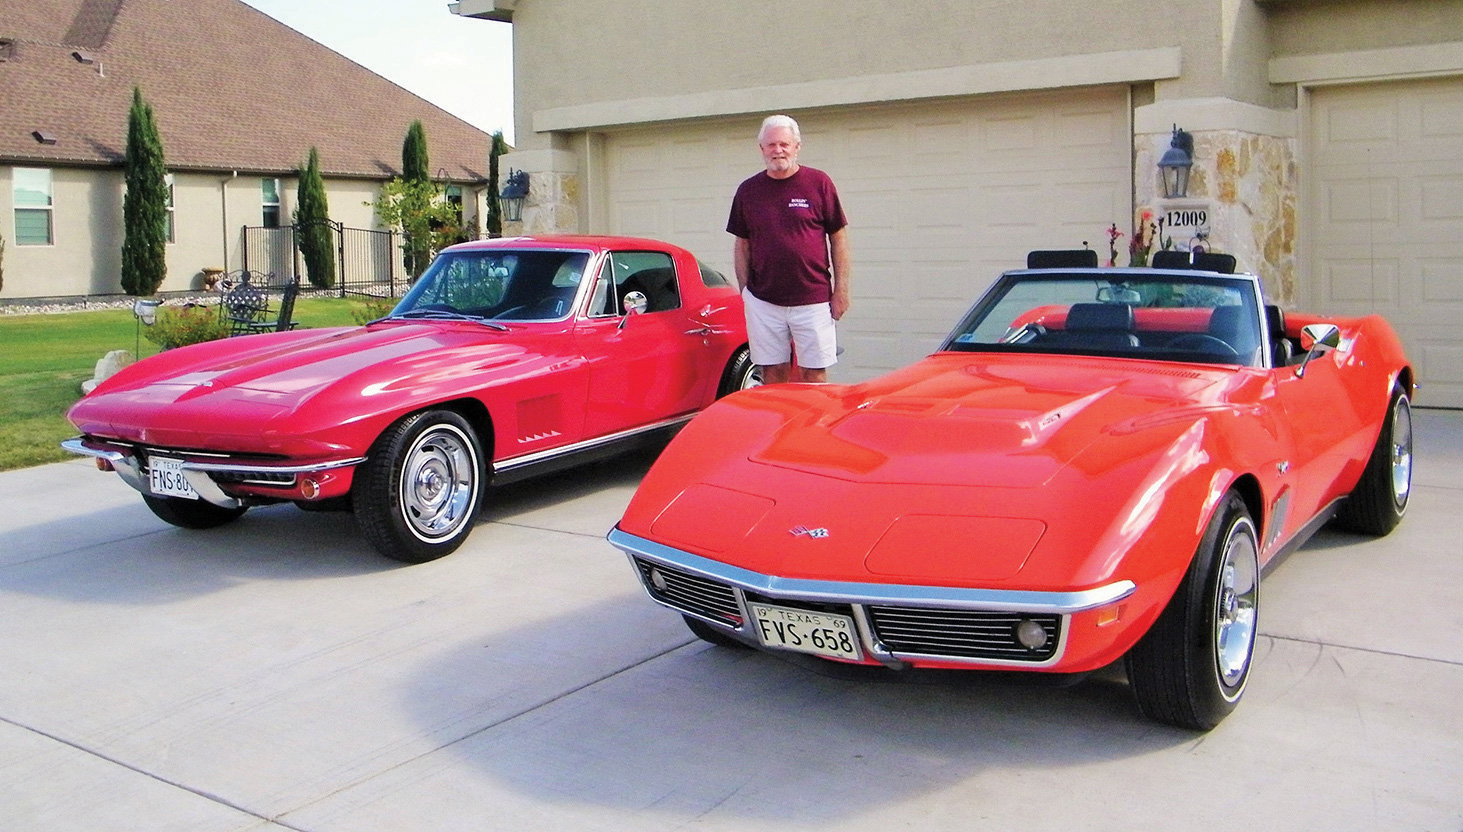 Terry Hitch with his classic corvettes